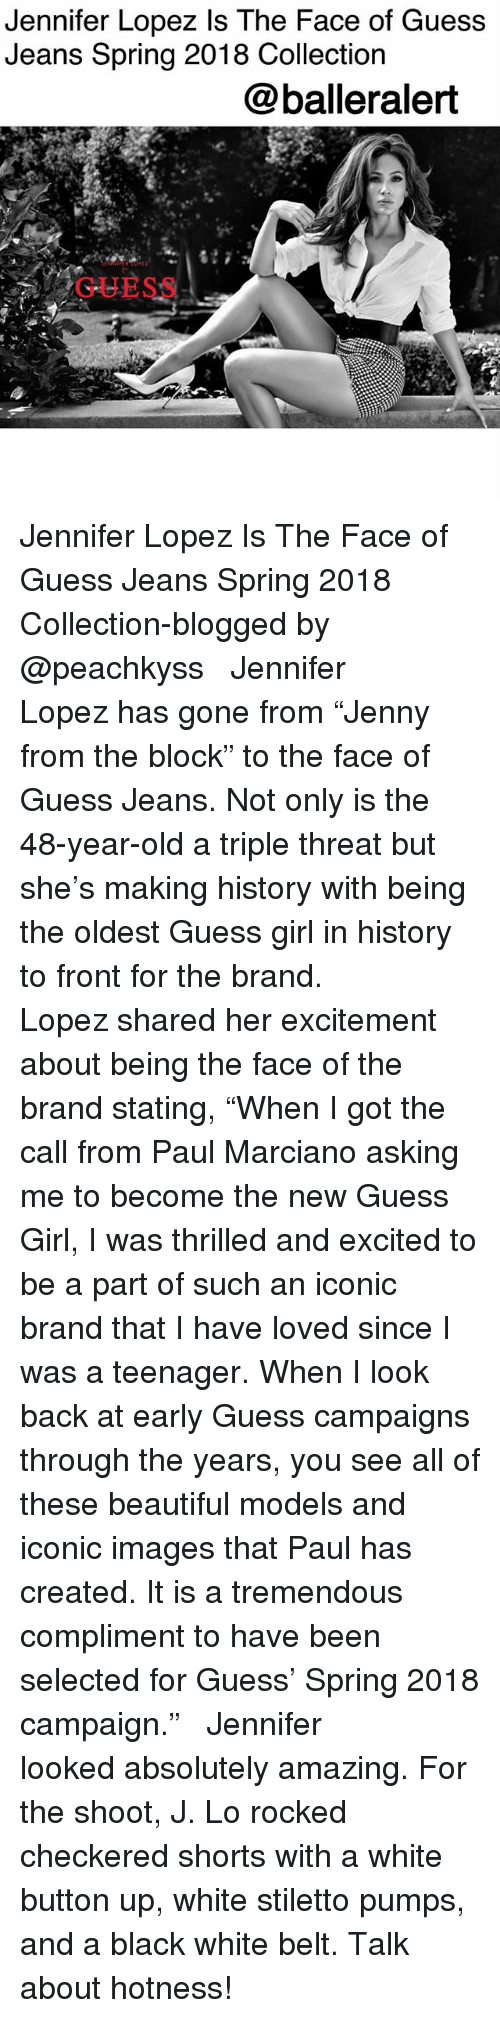 """hotness: Jennifer Lopez Is The Face of Guess  Jeans Spring 2018 Collection  @balleralert  GUESS Jennifer Lopez Is The Face of Guess Jeans Spring 2018 Collection-blogged by @peachkyss ⠀⠀⠀⠀⠀⠀⠀ ⠀⠀⠀⠀⠀⠀⠀ Jennifer Lopez has gone from """"Jenny from the block"""" to the face of Guess Jeans. Not only is the 48-year-old a triple threat but she's making history with being the oldest Guess girl in history to front for the brand. ⠀⠀⠀⠀⠀⠀⠀ ⠀⠀⠀⠀⠀⠀⠀ Lopez shared her excitement about being the face of the brand stating, """"When I got the call from Paul Marciano asking me to become the new Guess Girl, I was thrilled and excited to be a part of such an iconic brand that I have loved since I was a teenager. When I look back at early Guess campaigns through the years, you see all of these beautiful models and iconic images that Paul has created. It is a tremendous compliment to have been selected for Guess' Spring 2018 campaign."""" ⠀⠀⠀⠀⠀⠀⠀ ⠀⠀⠀⠀⠀⠀⠀ Jennifer looked absolutely amazing. For the shoot, J. Lo rocked checkered shorts with a white button up, white stiletto pumps, and a black white belt. Talk about hotness!"""